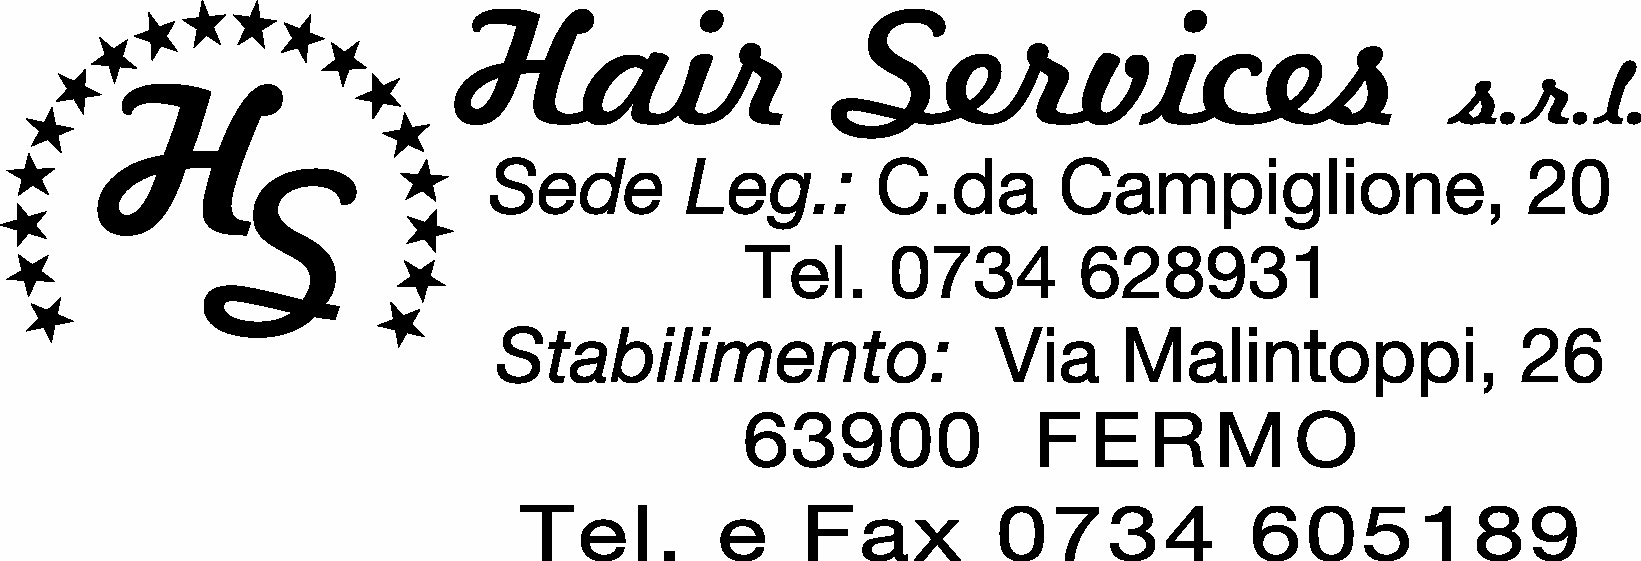 HAIR SERVICES LOGO